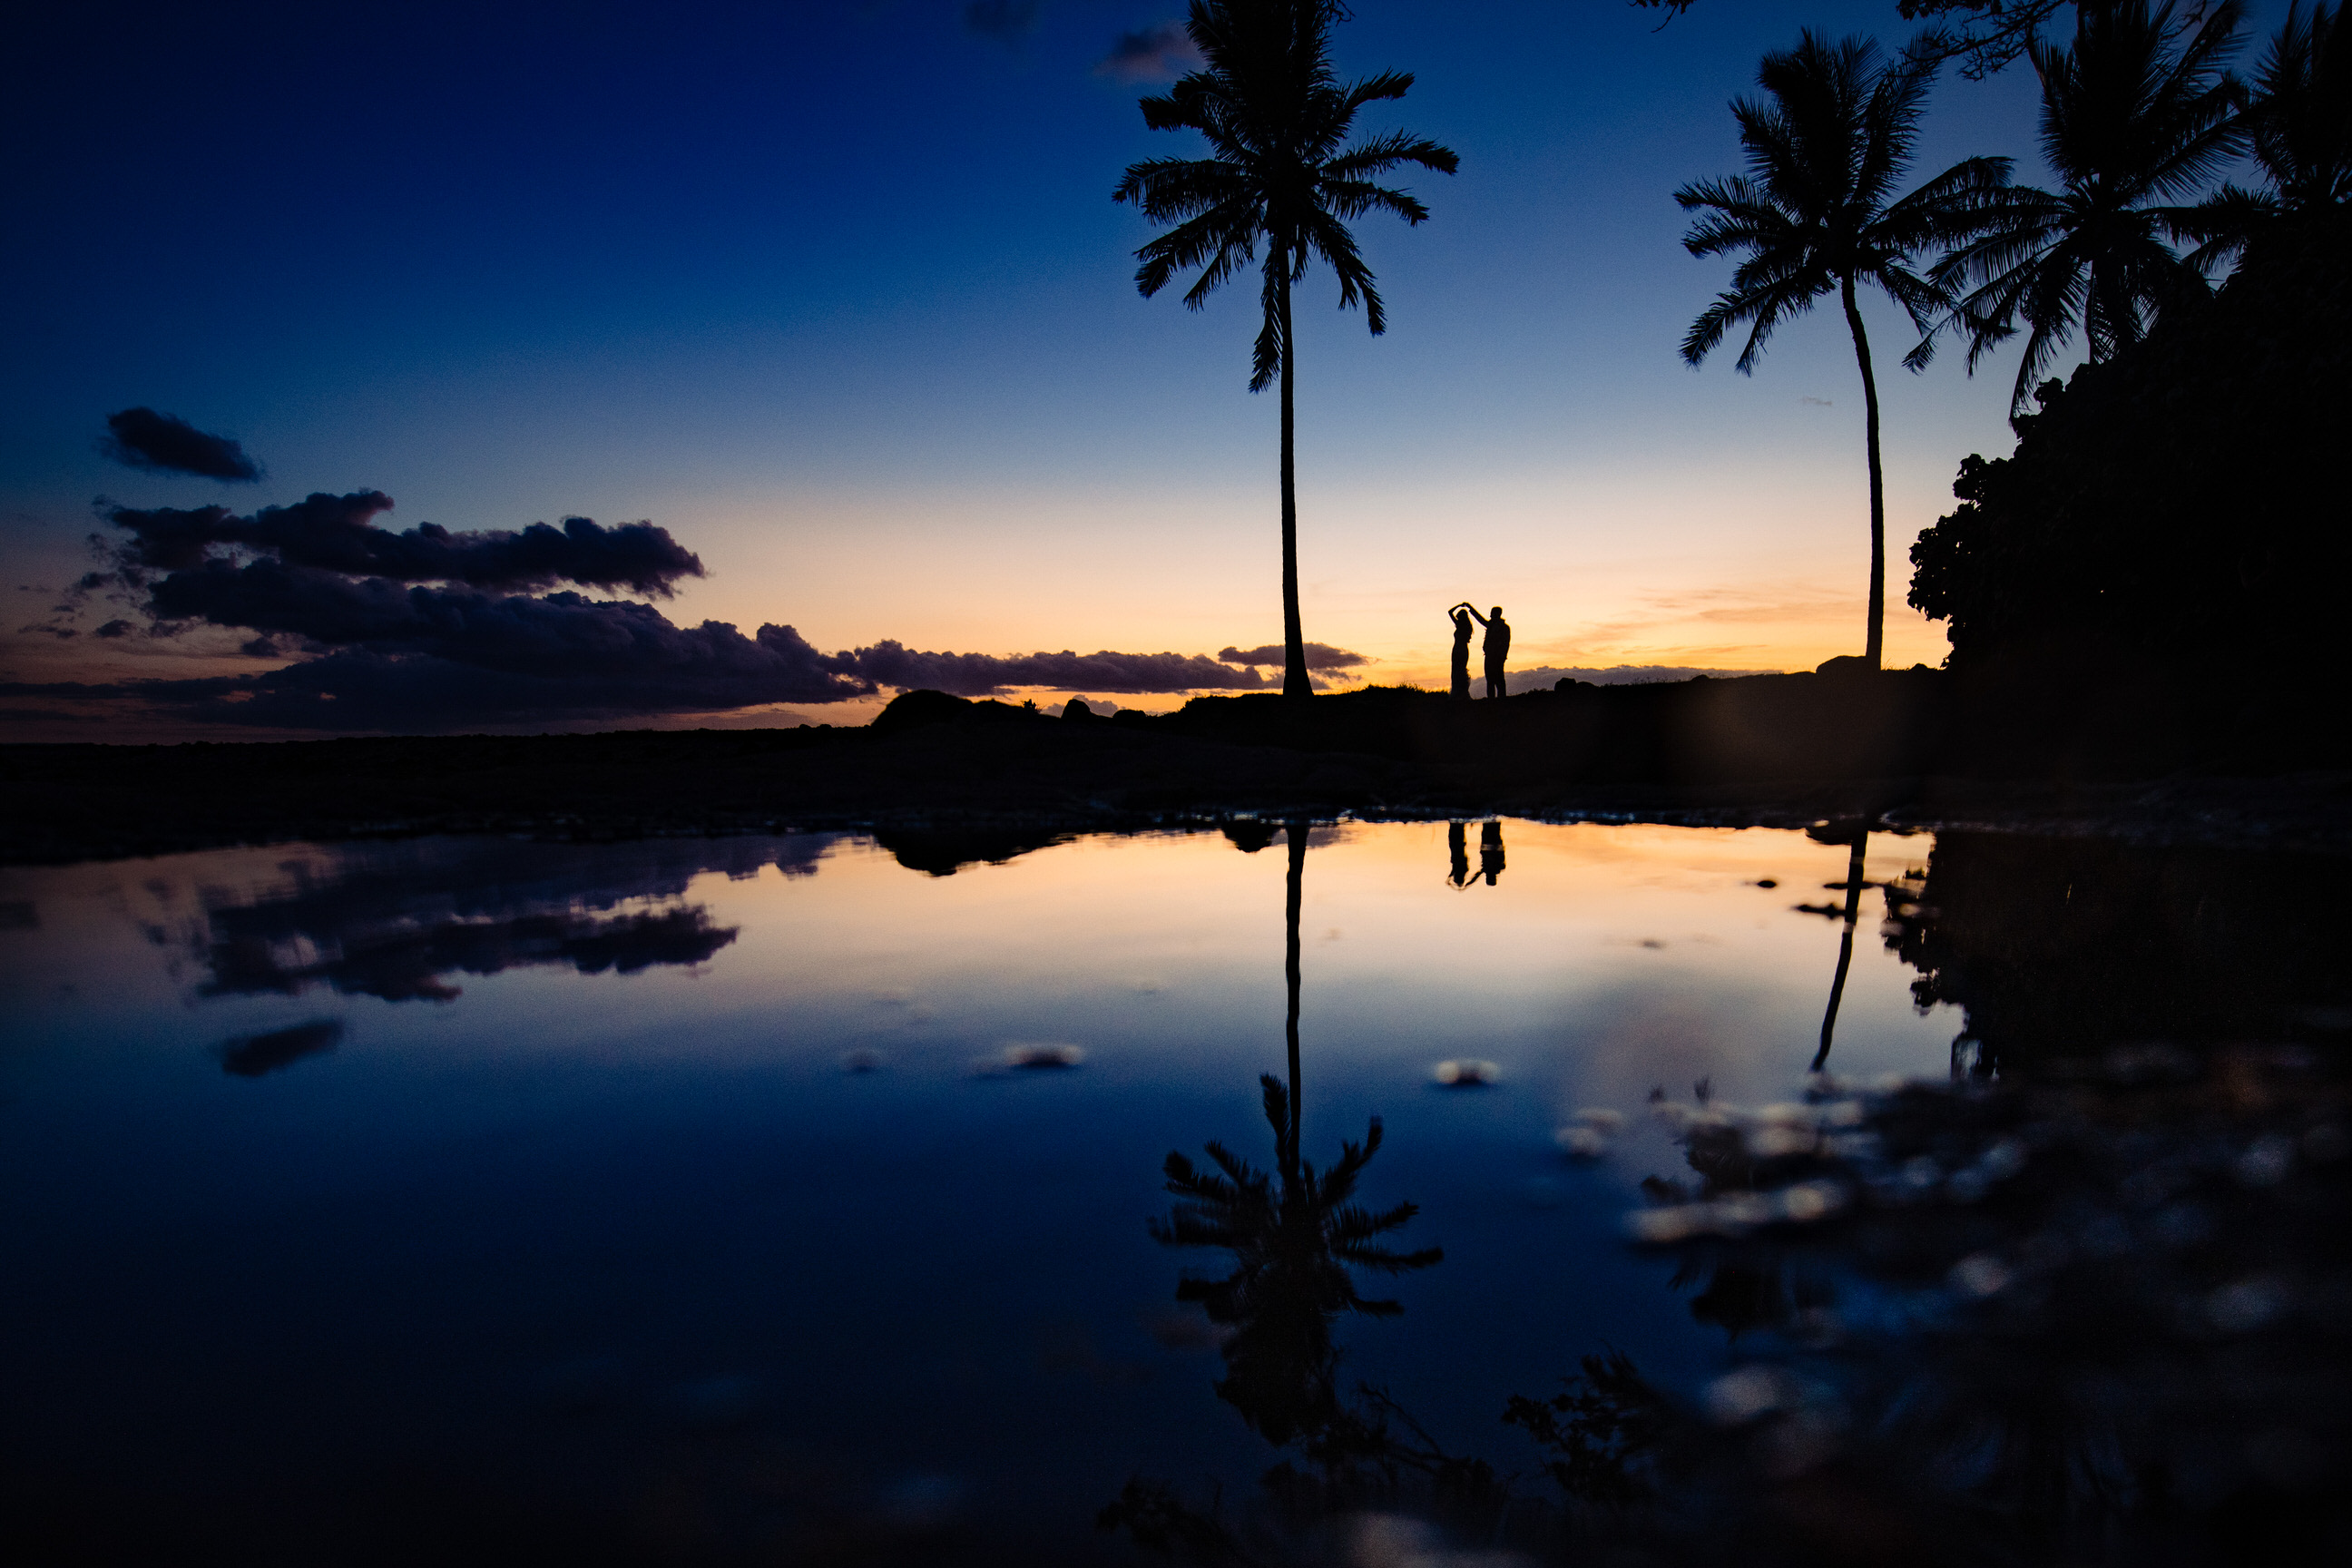 Silhouette couple against palm trees at sunset - photo by Angela Nelson Photography